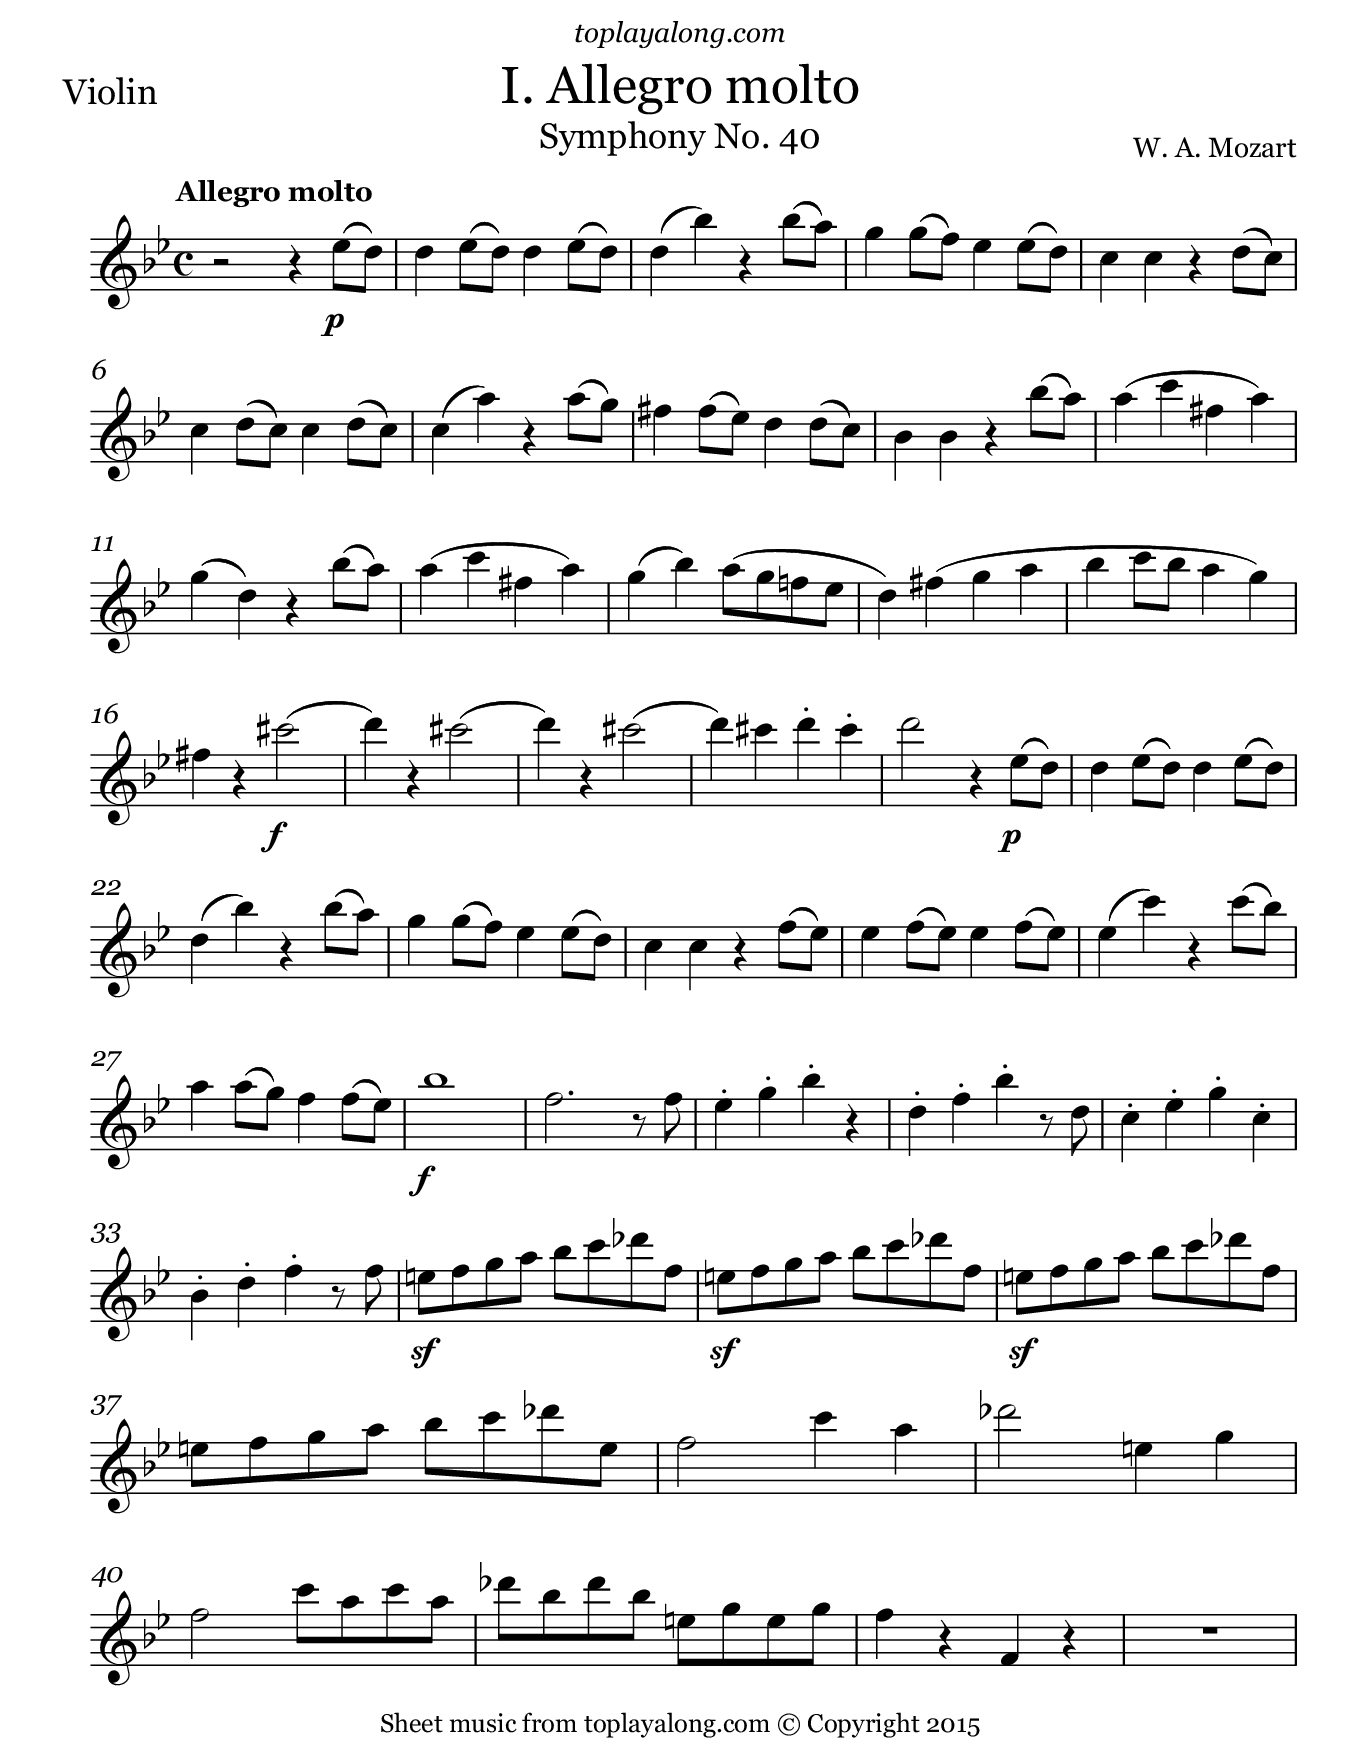 Symphony No. 40 (I. Allegro molto) by Mozart. Sheet music for Violin, page 1.